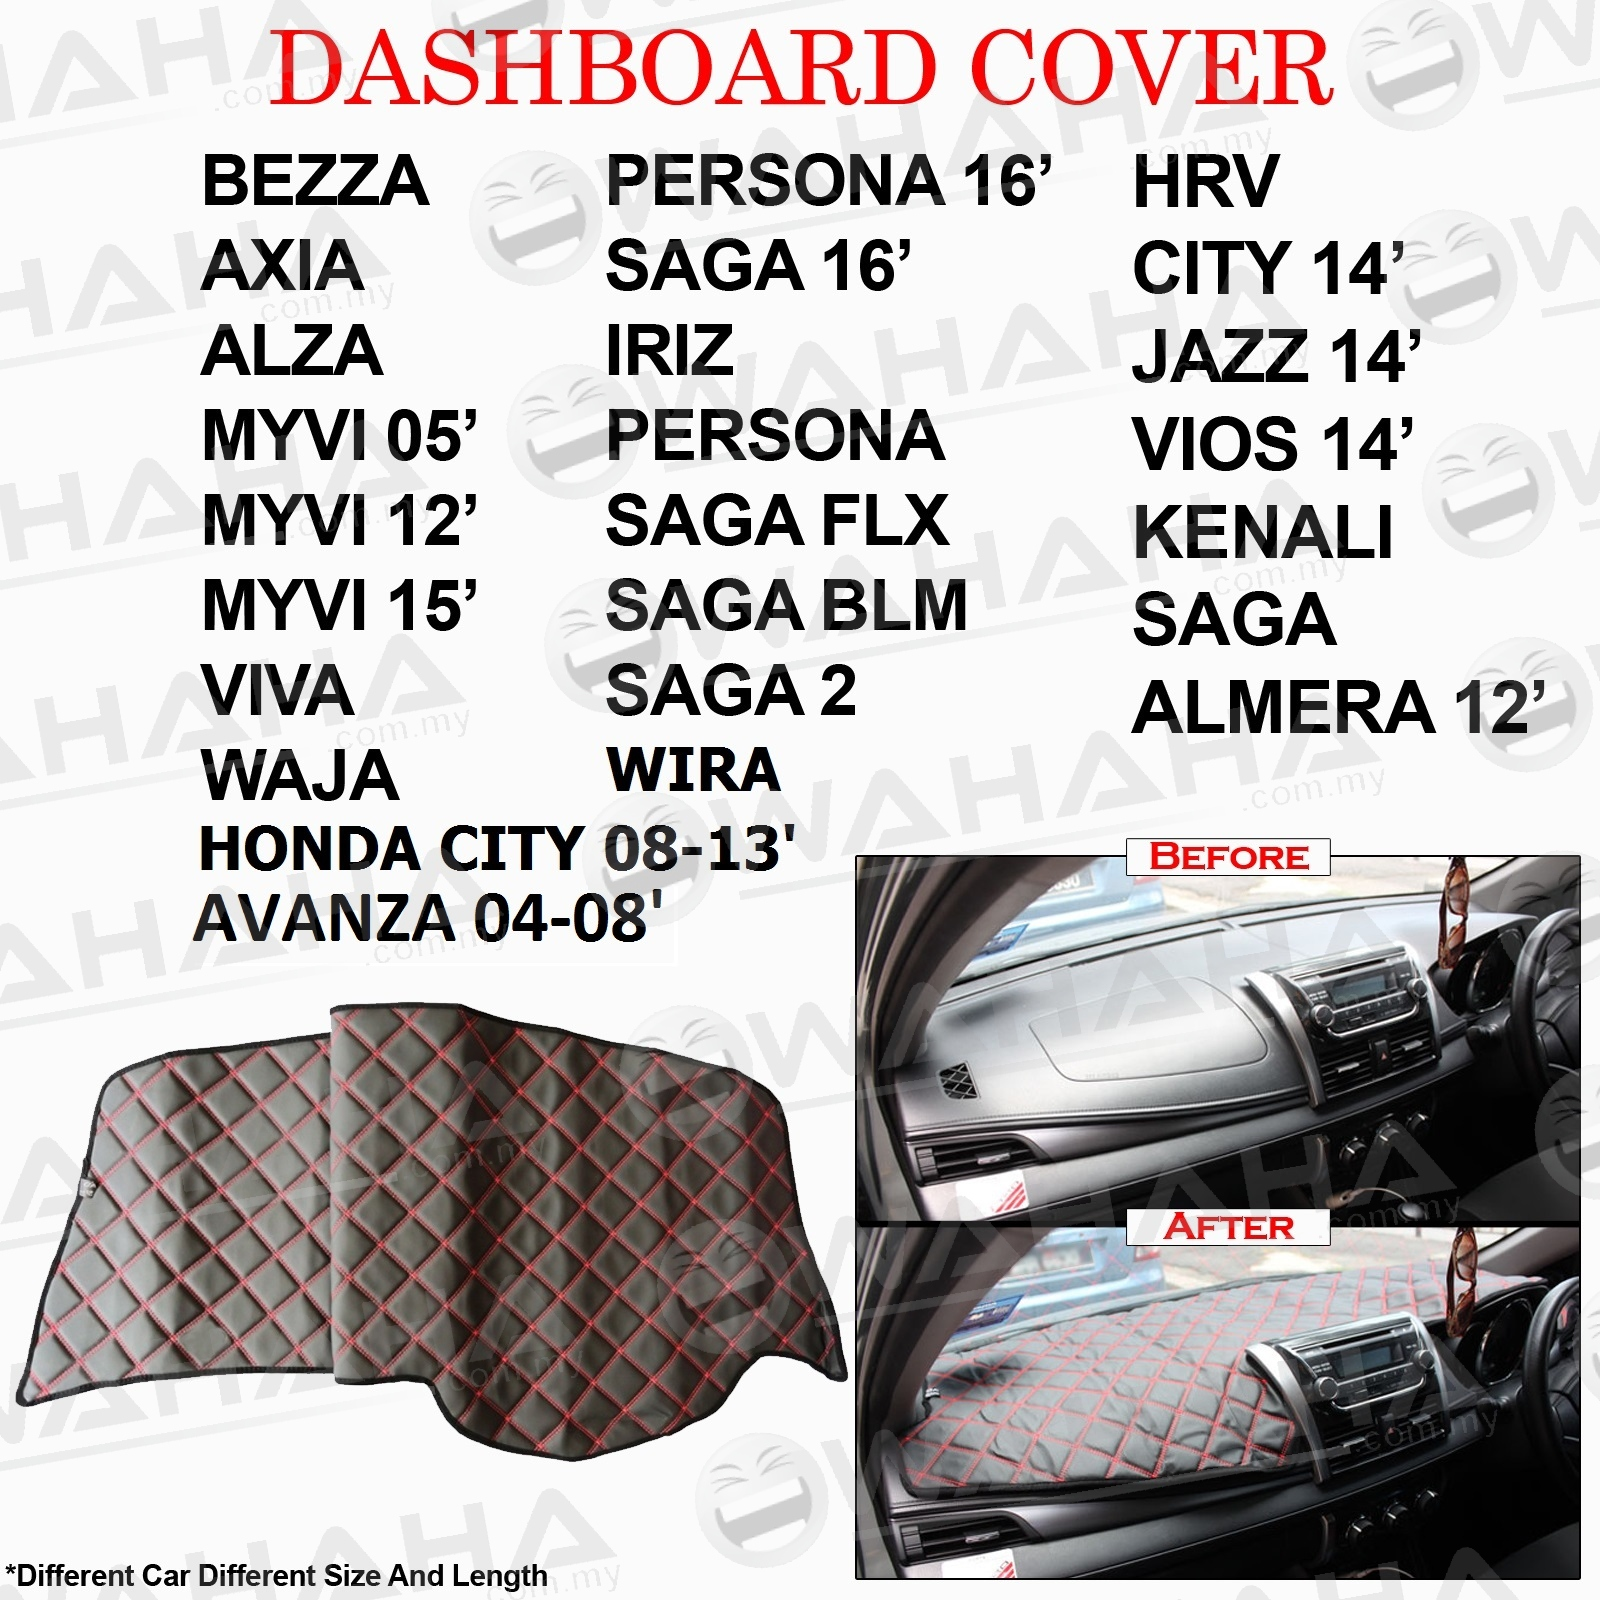 cover quality best mat cheapest mats buy dashboard rio recommended dash product kia model deals sedan sell